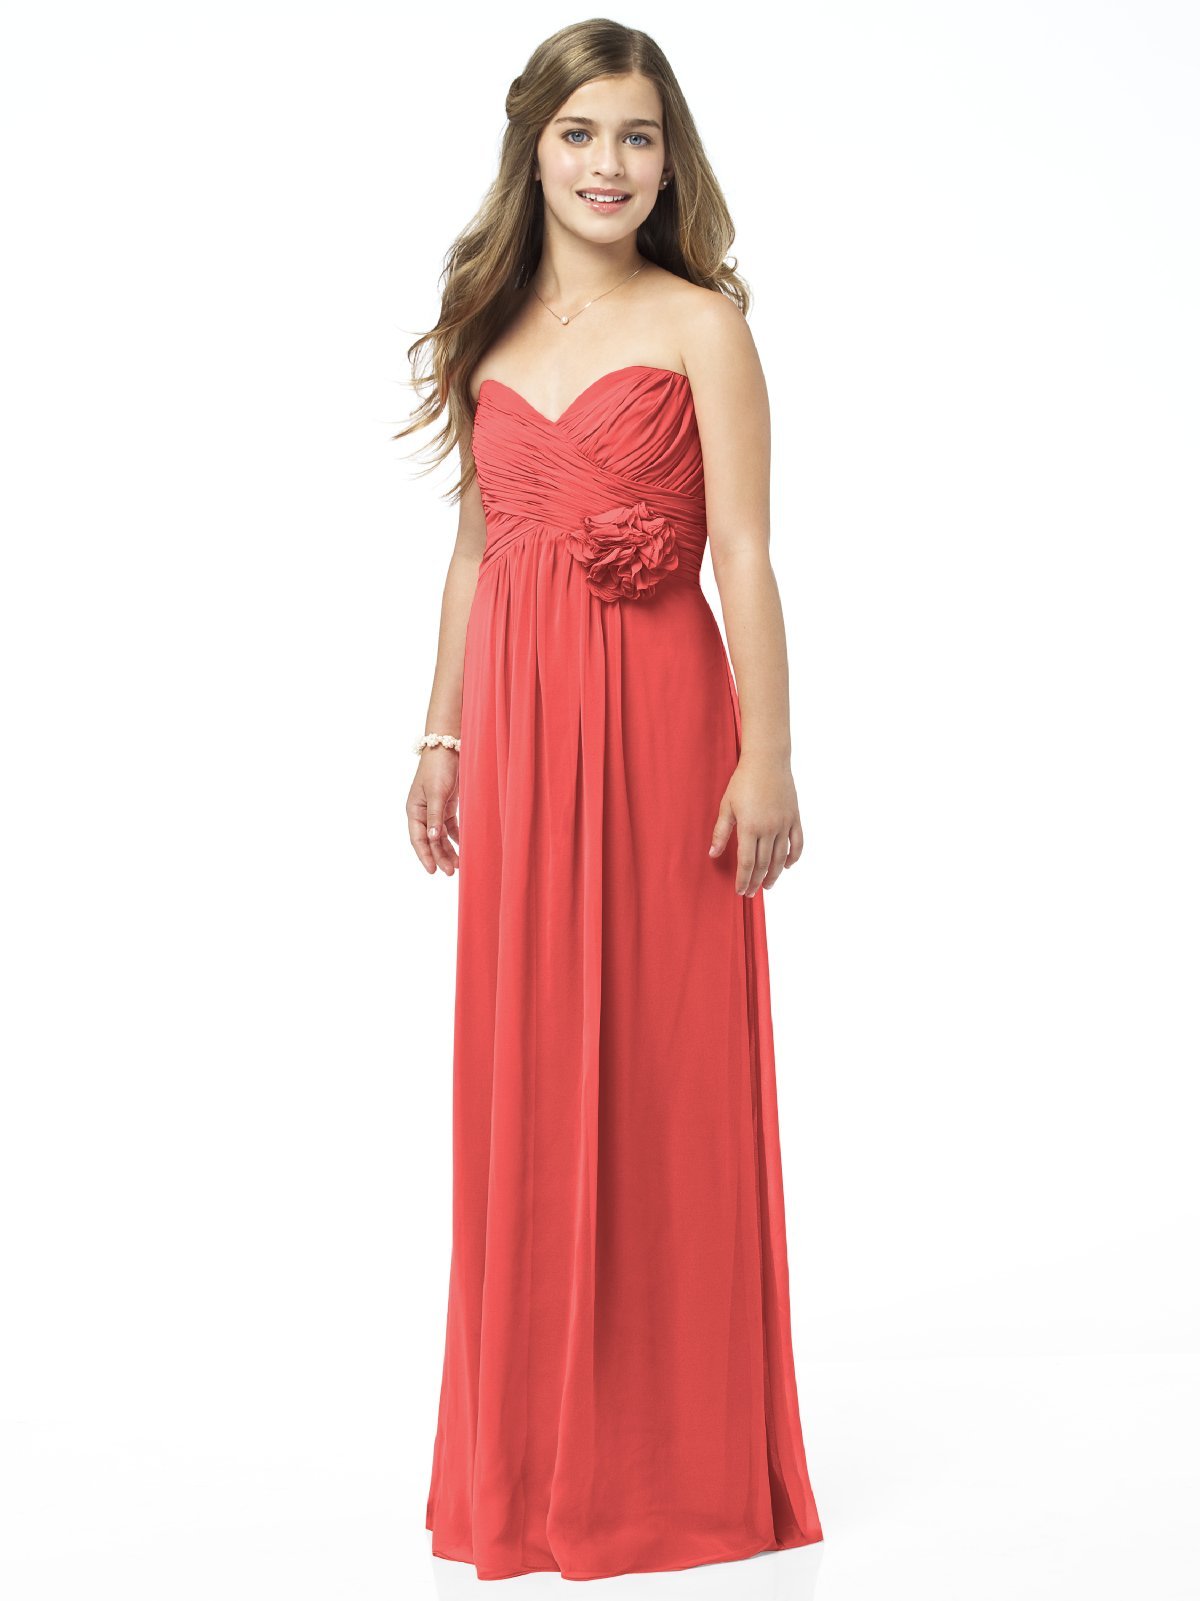 Orange Red Column Strapless Sweetheart Zipper Ruffles And Flowers Floor Length Chiffon Prom Dresses